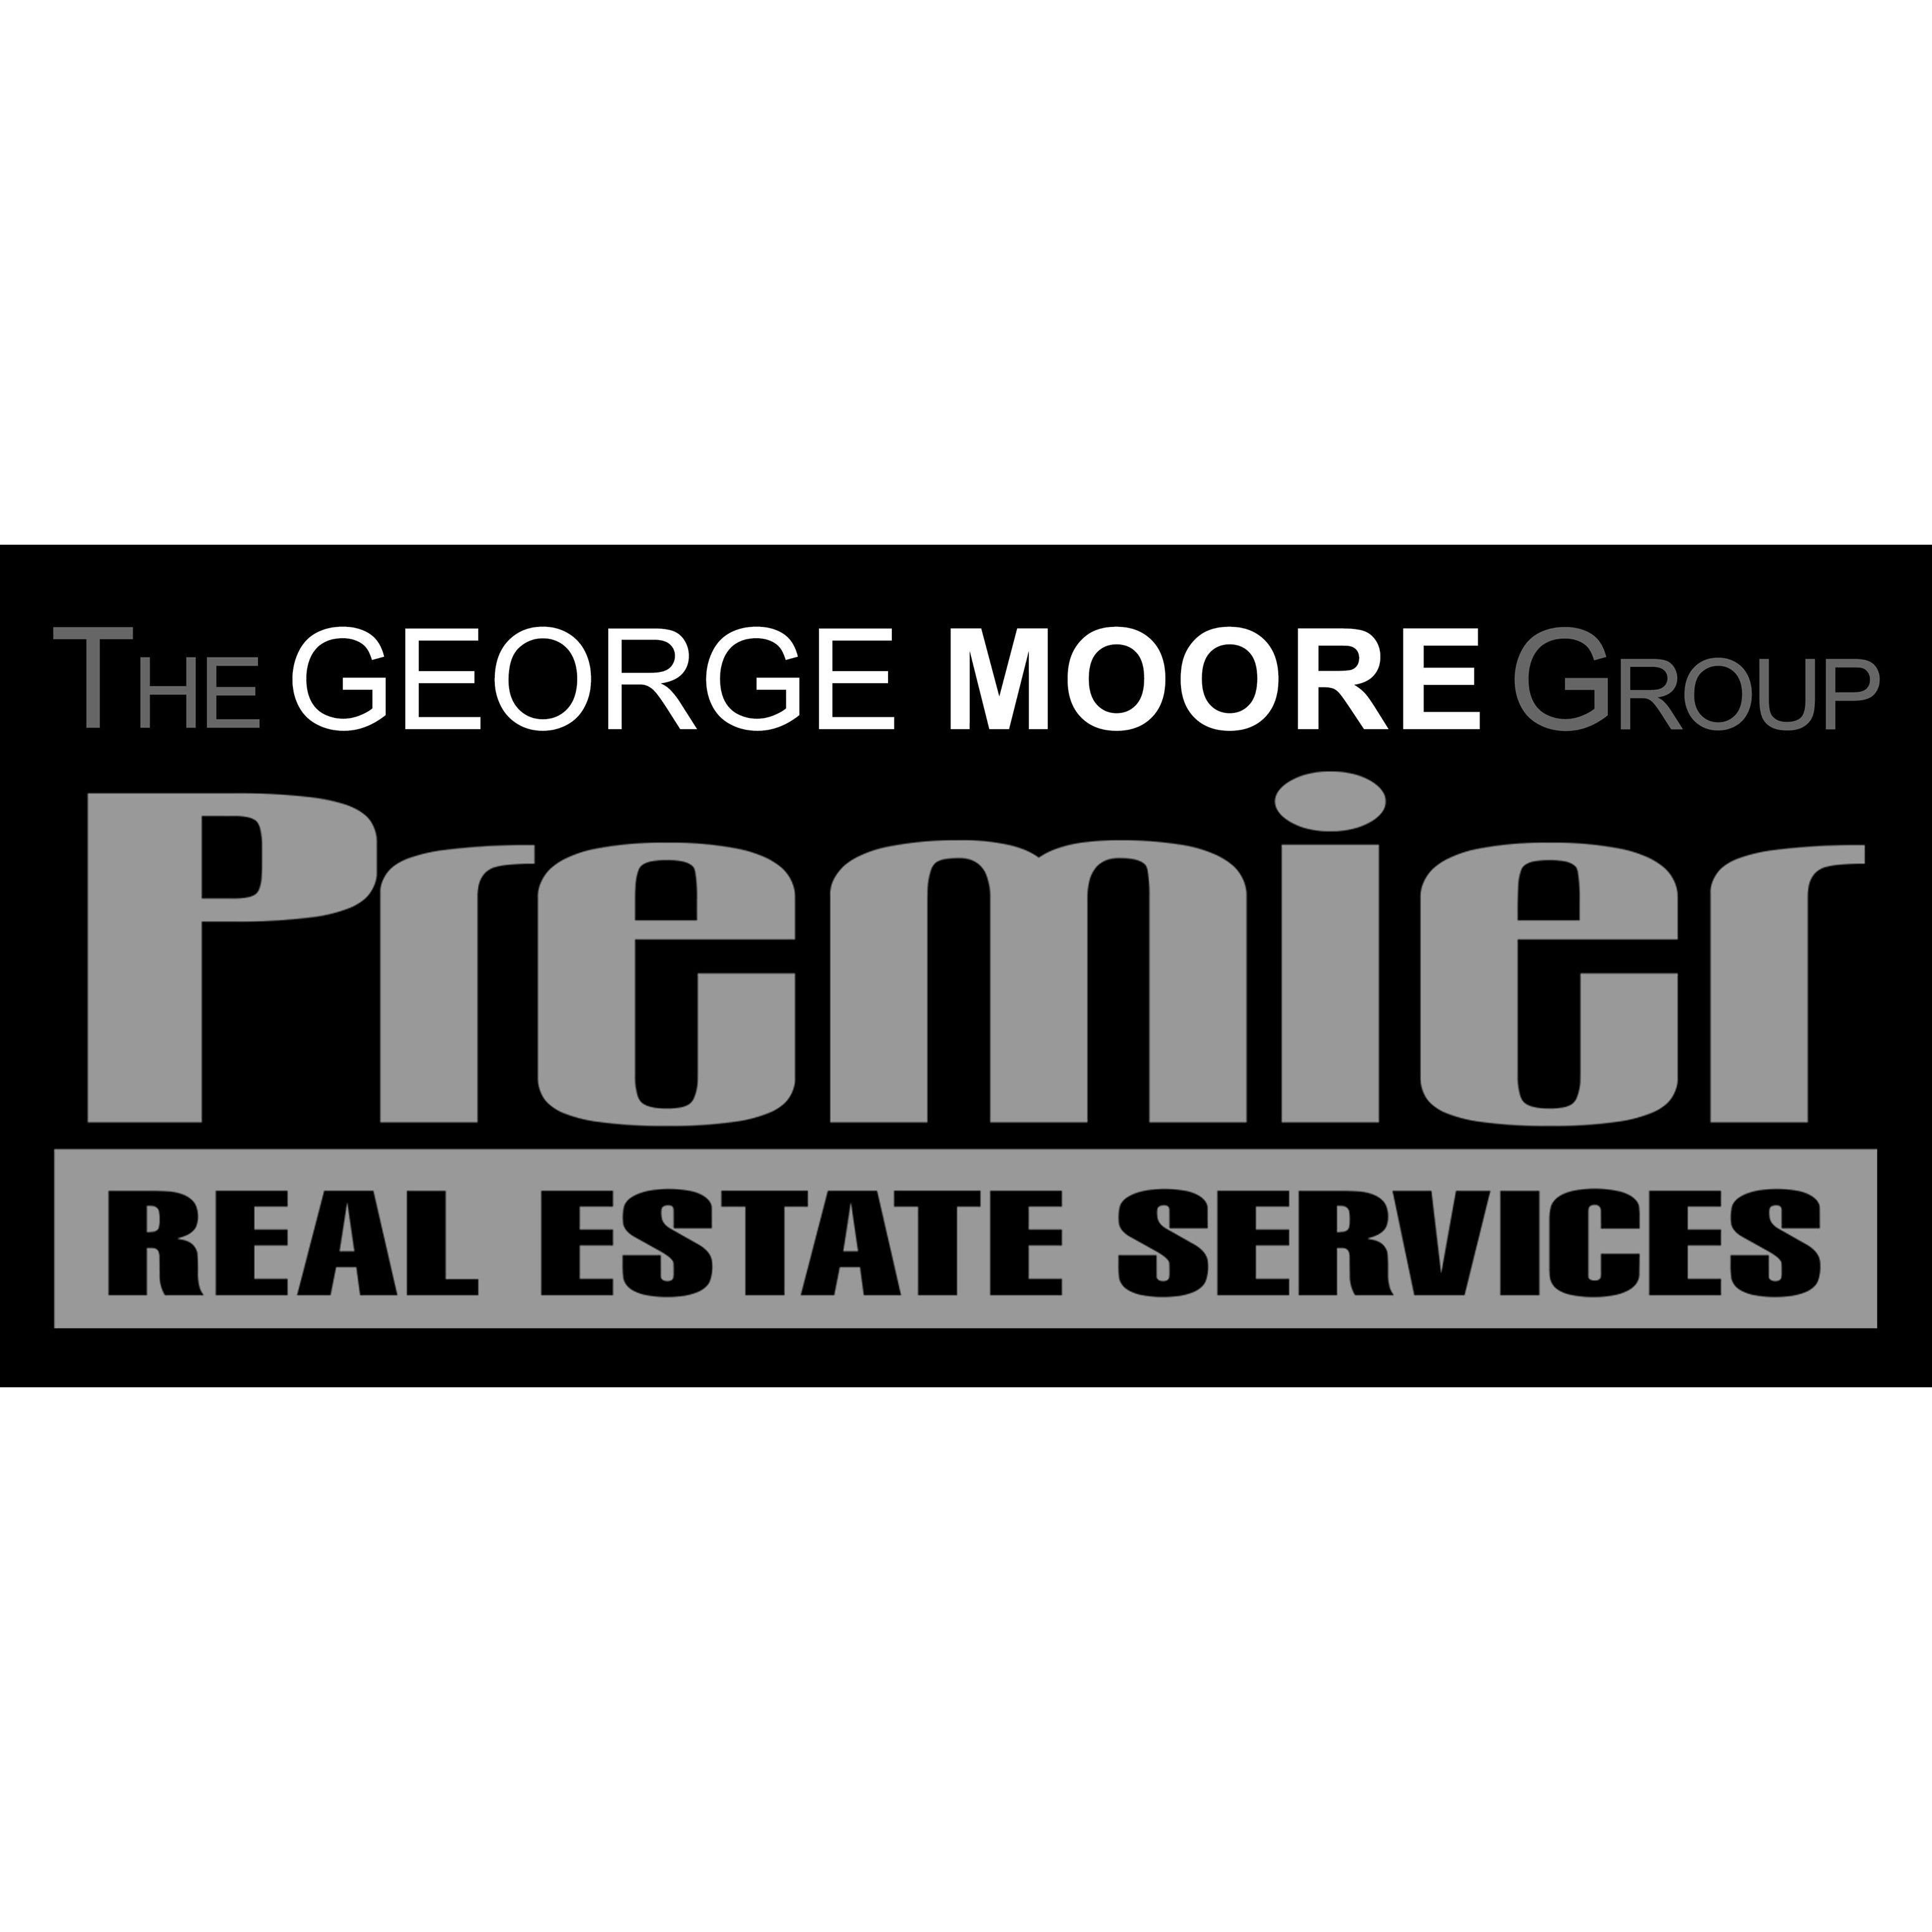 The George Moore Group - Premier Real Estate Services